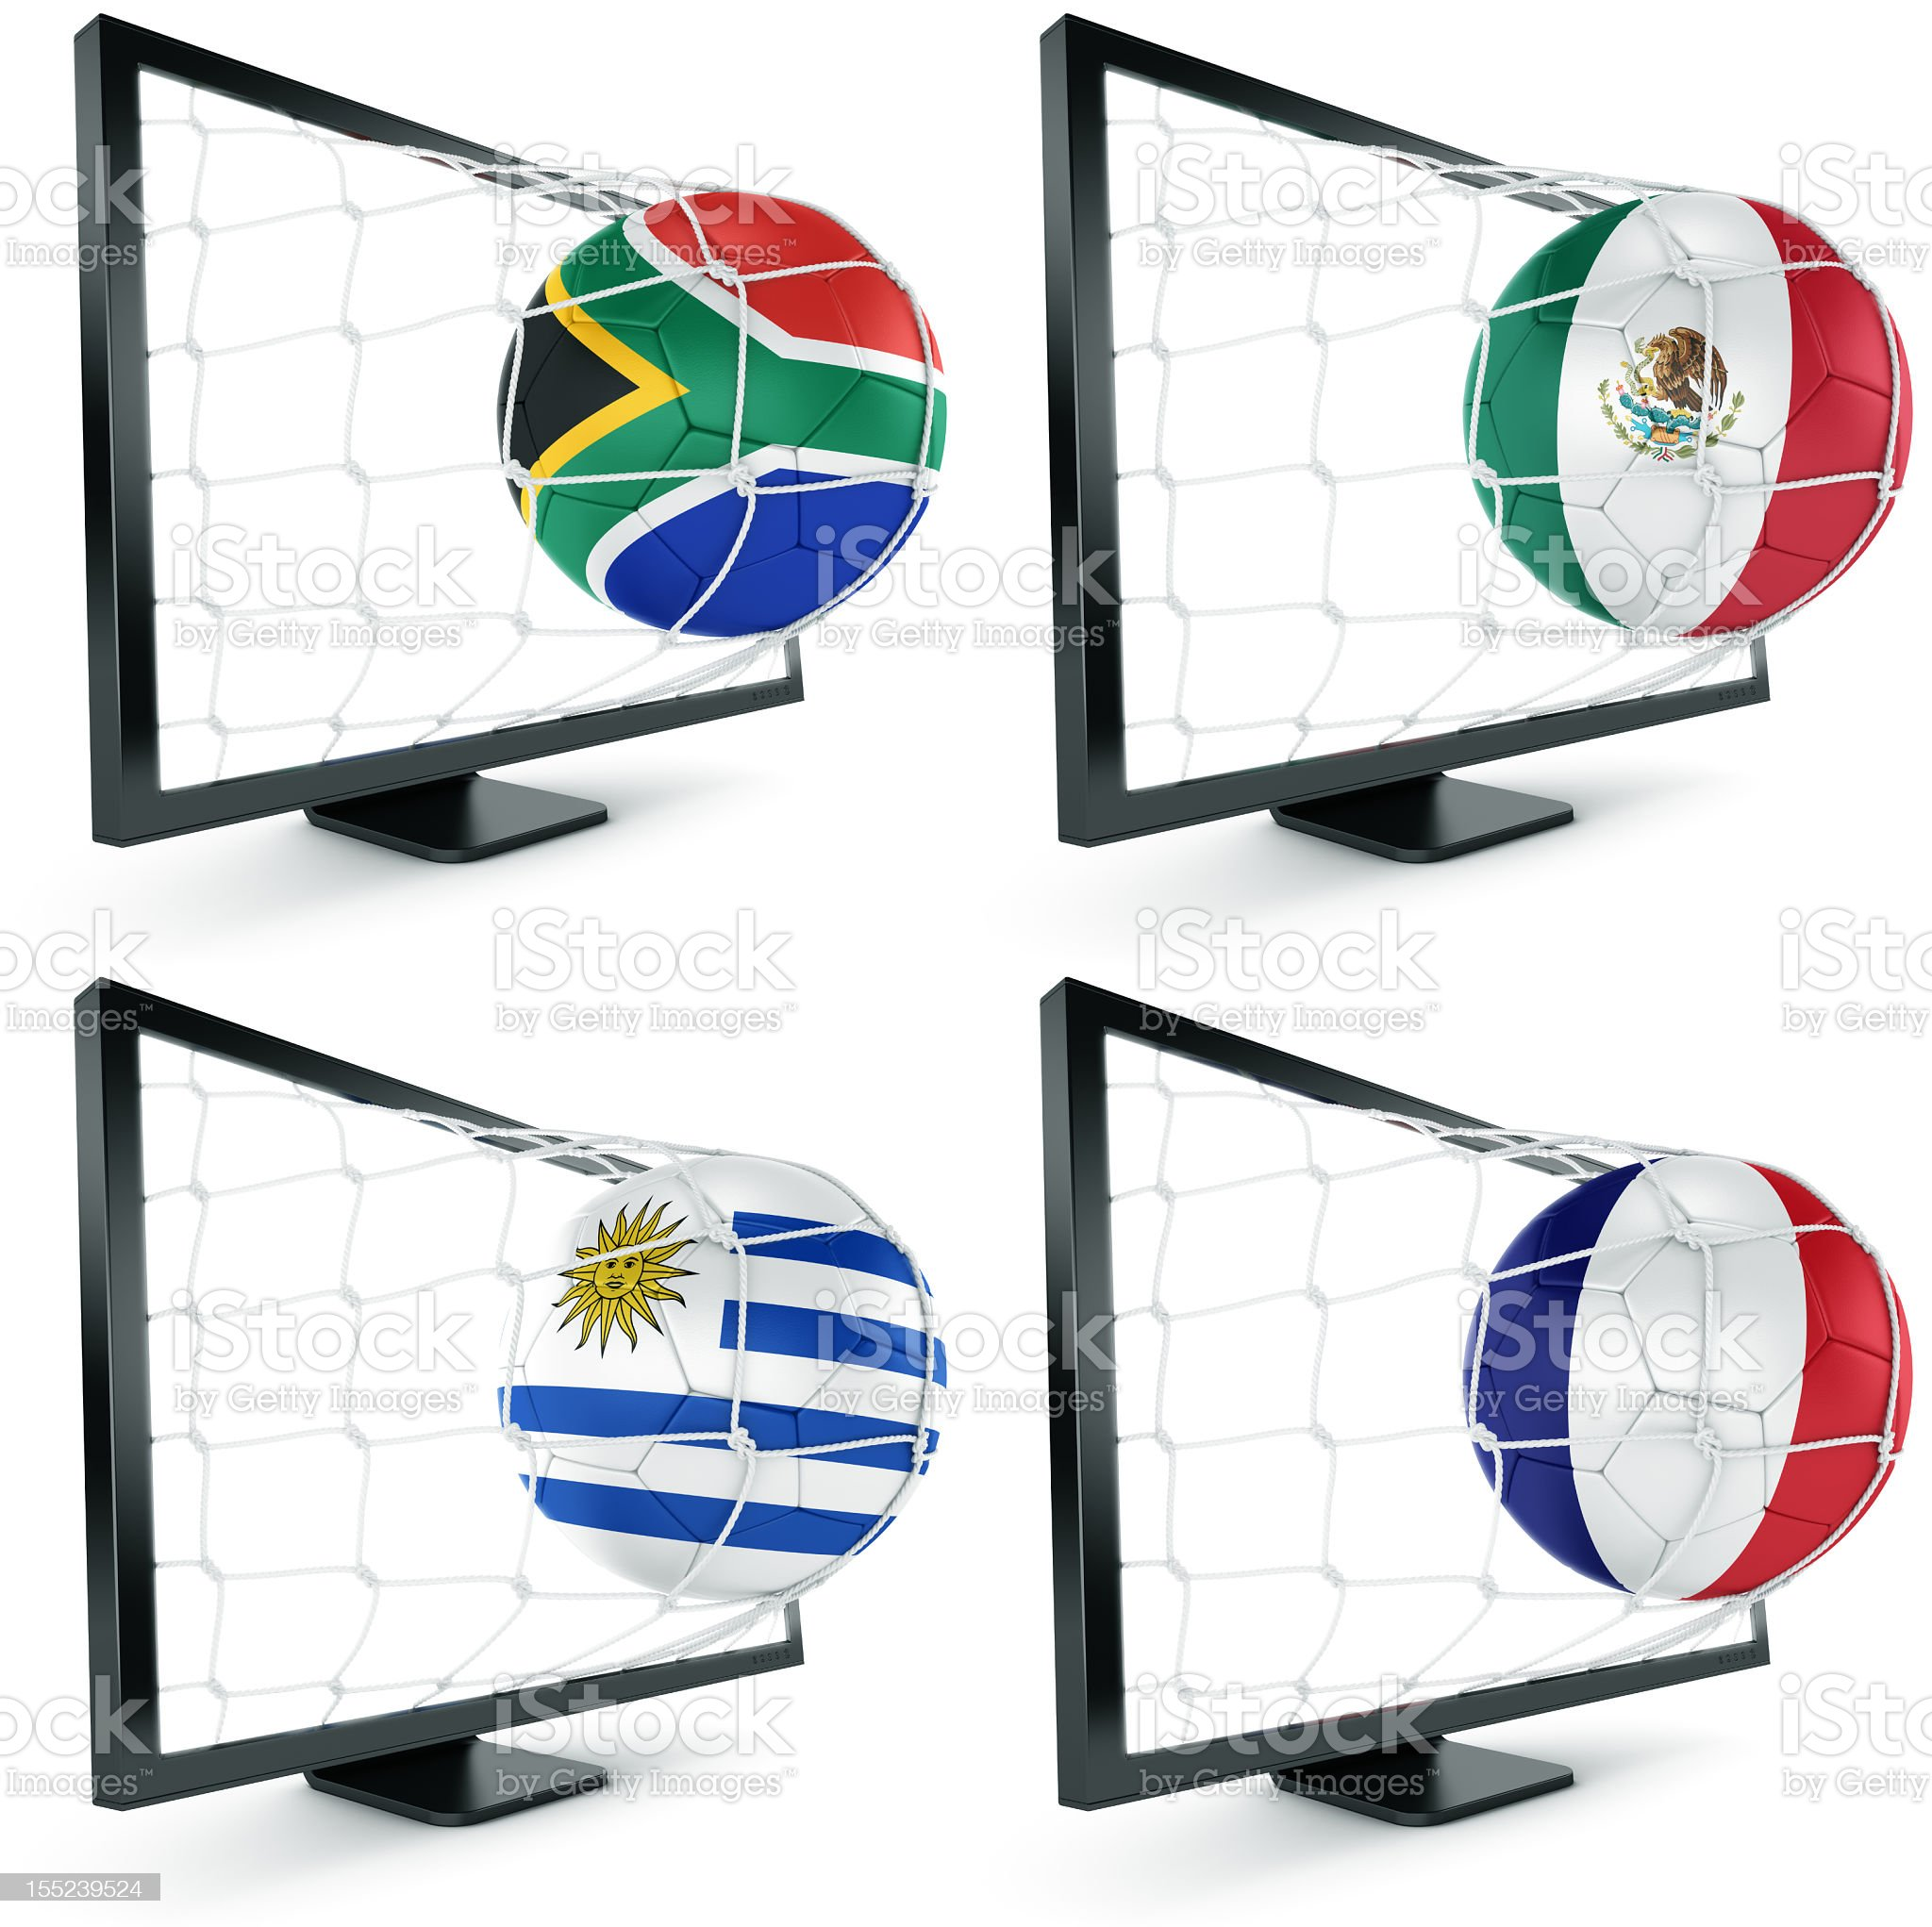 Soccer ball coming out of monitor royalty-free stock photo